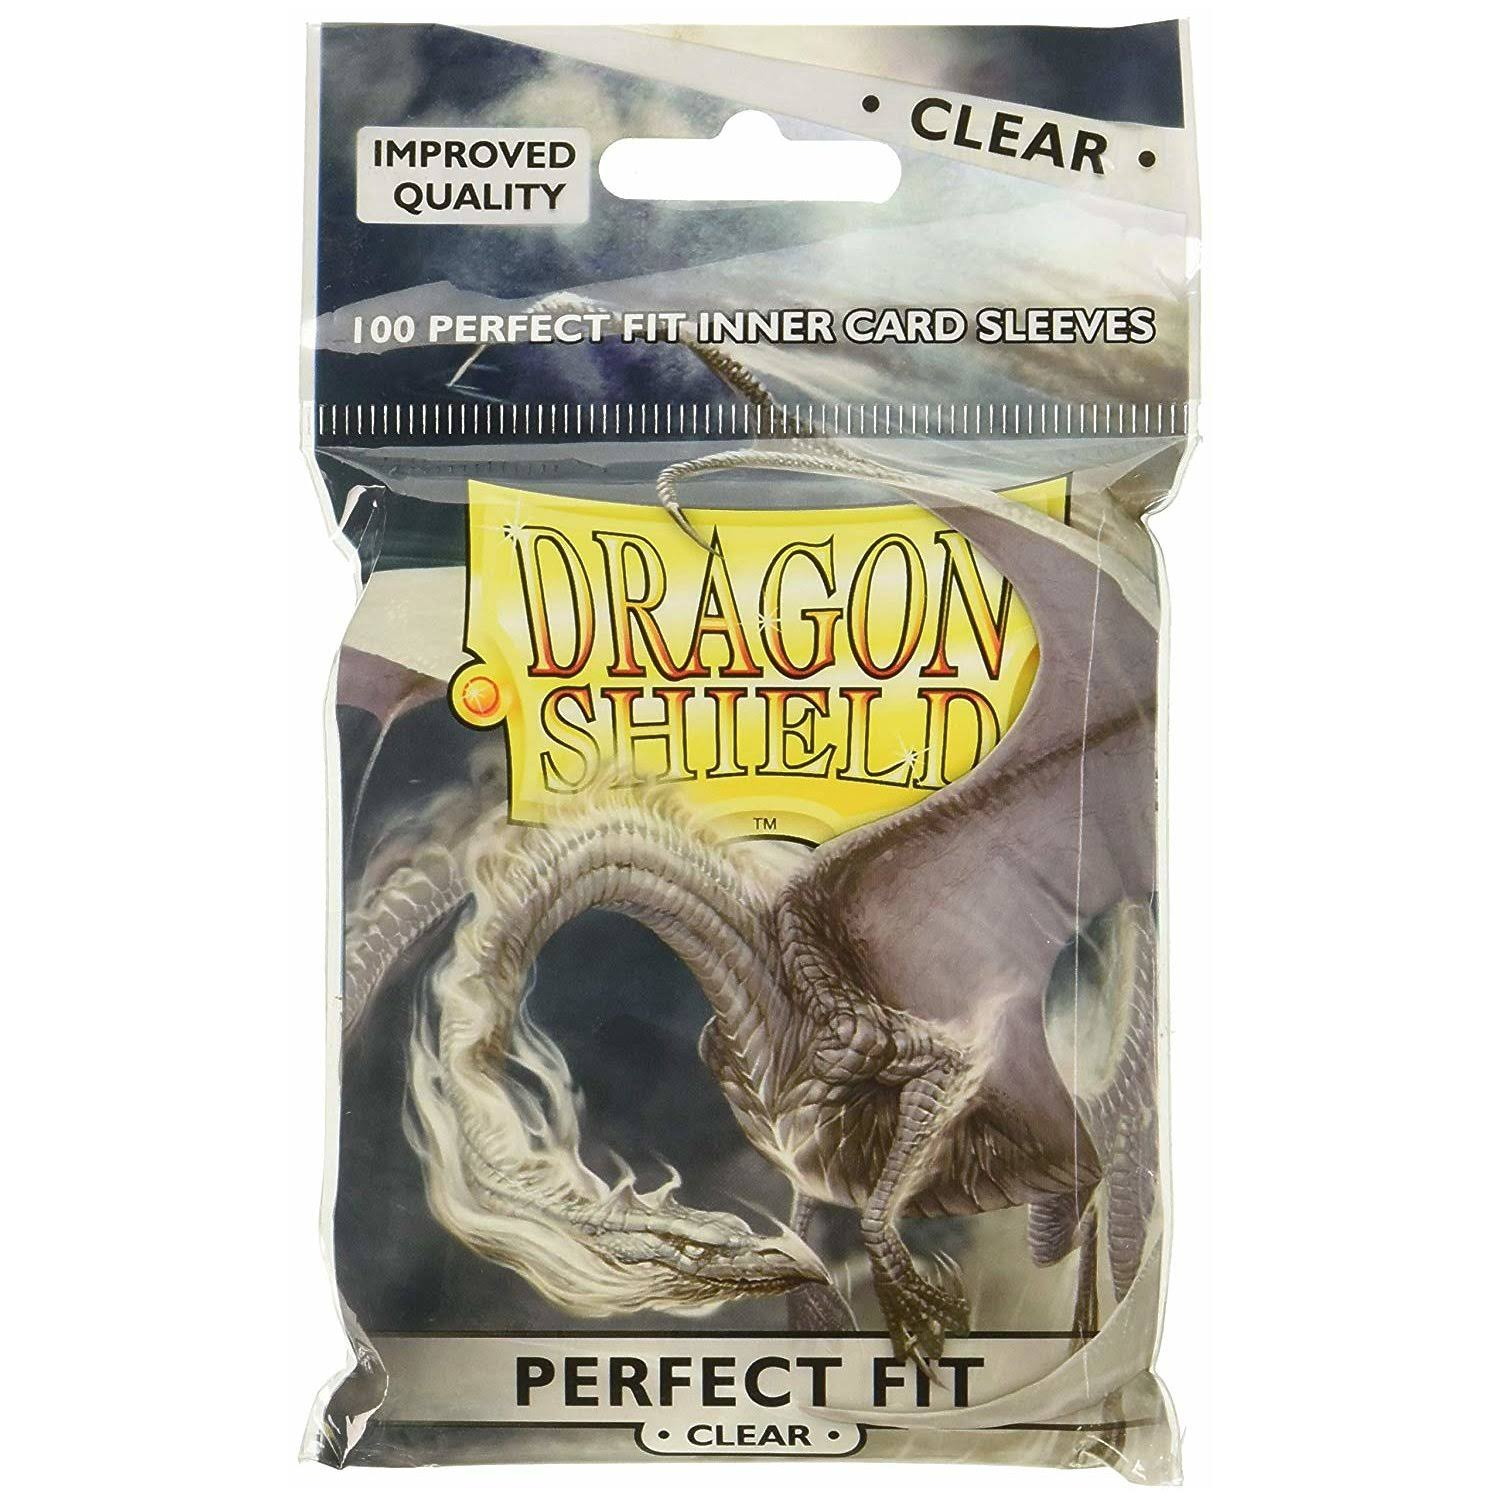 Dragon Shield Inner Card Sleeves - Clear, x100